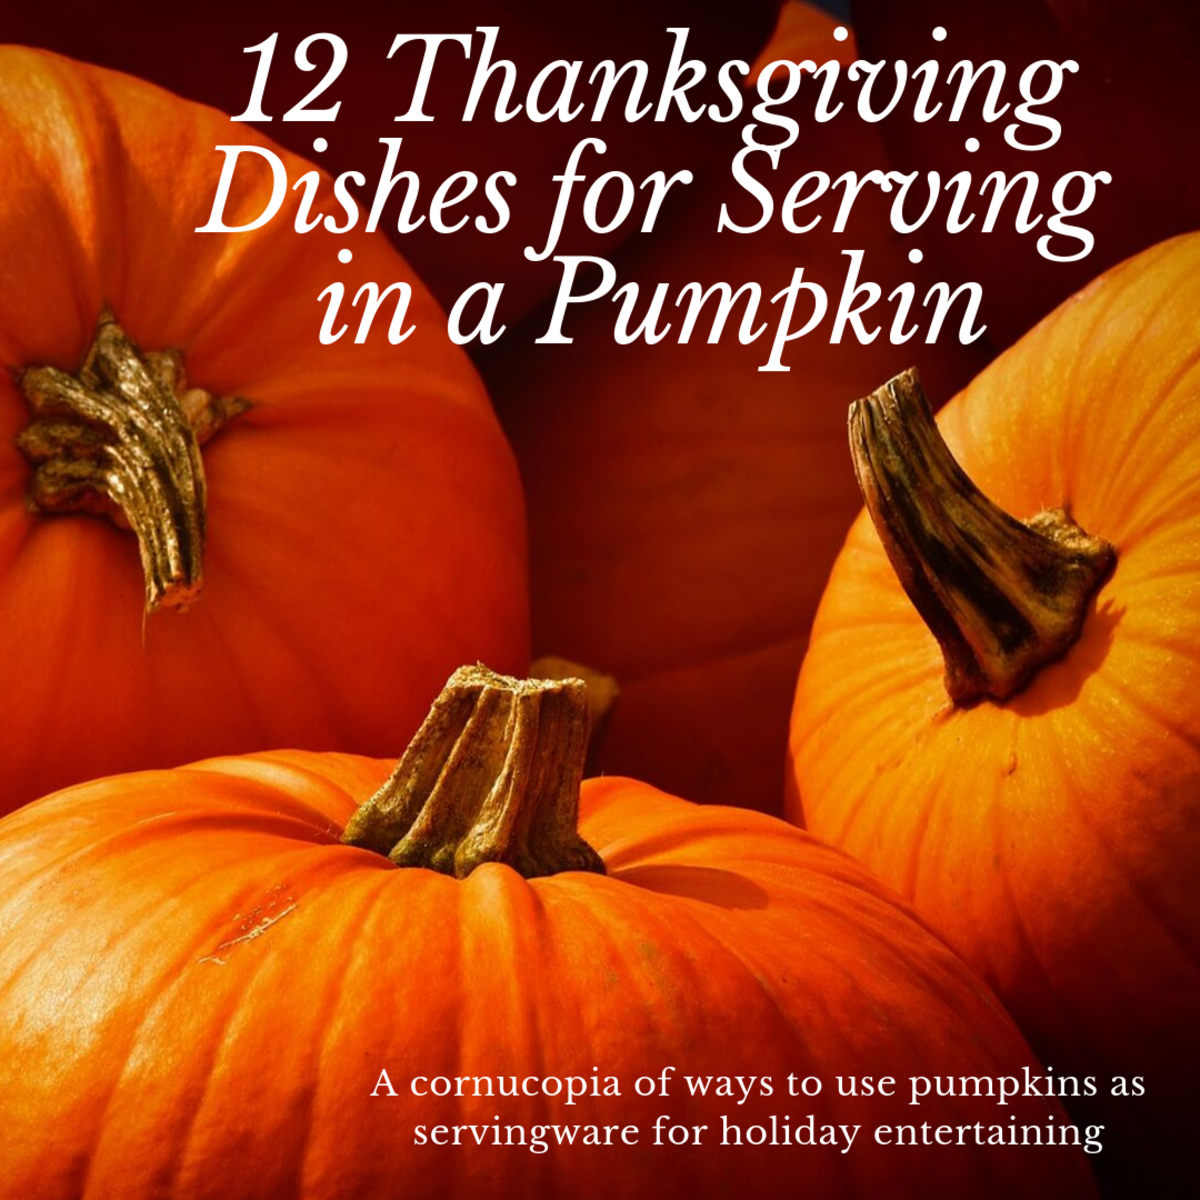 This guide will provide 12 different ideas for holiday dishes to serve in a pumpkin.